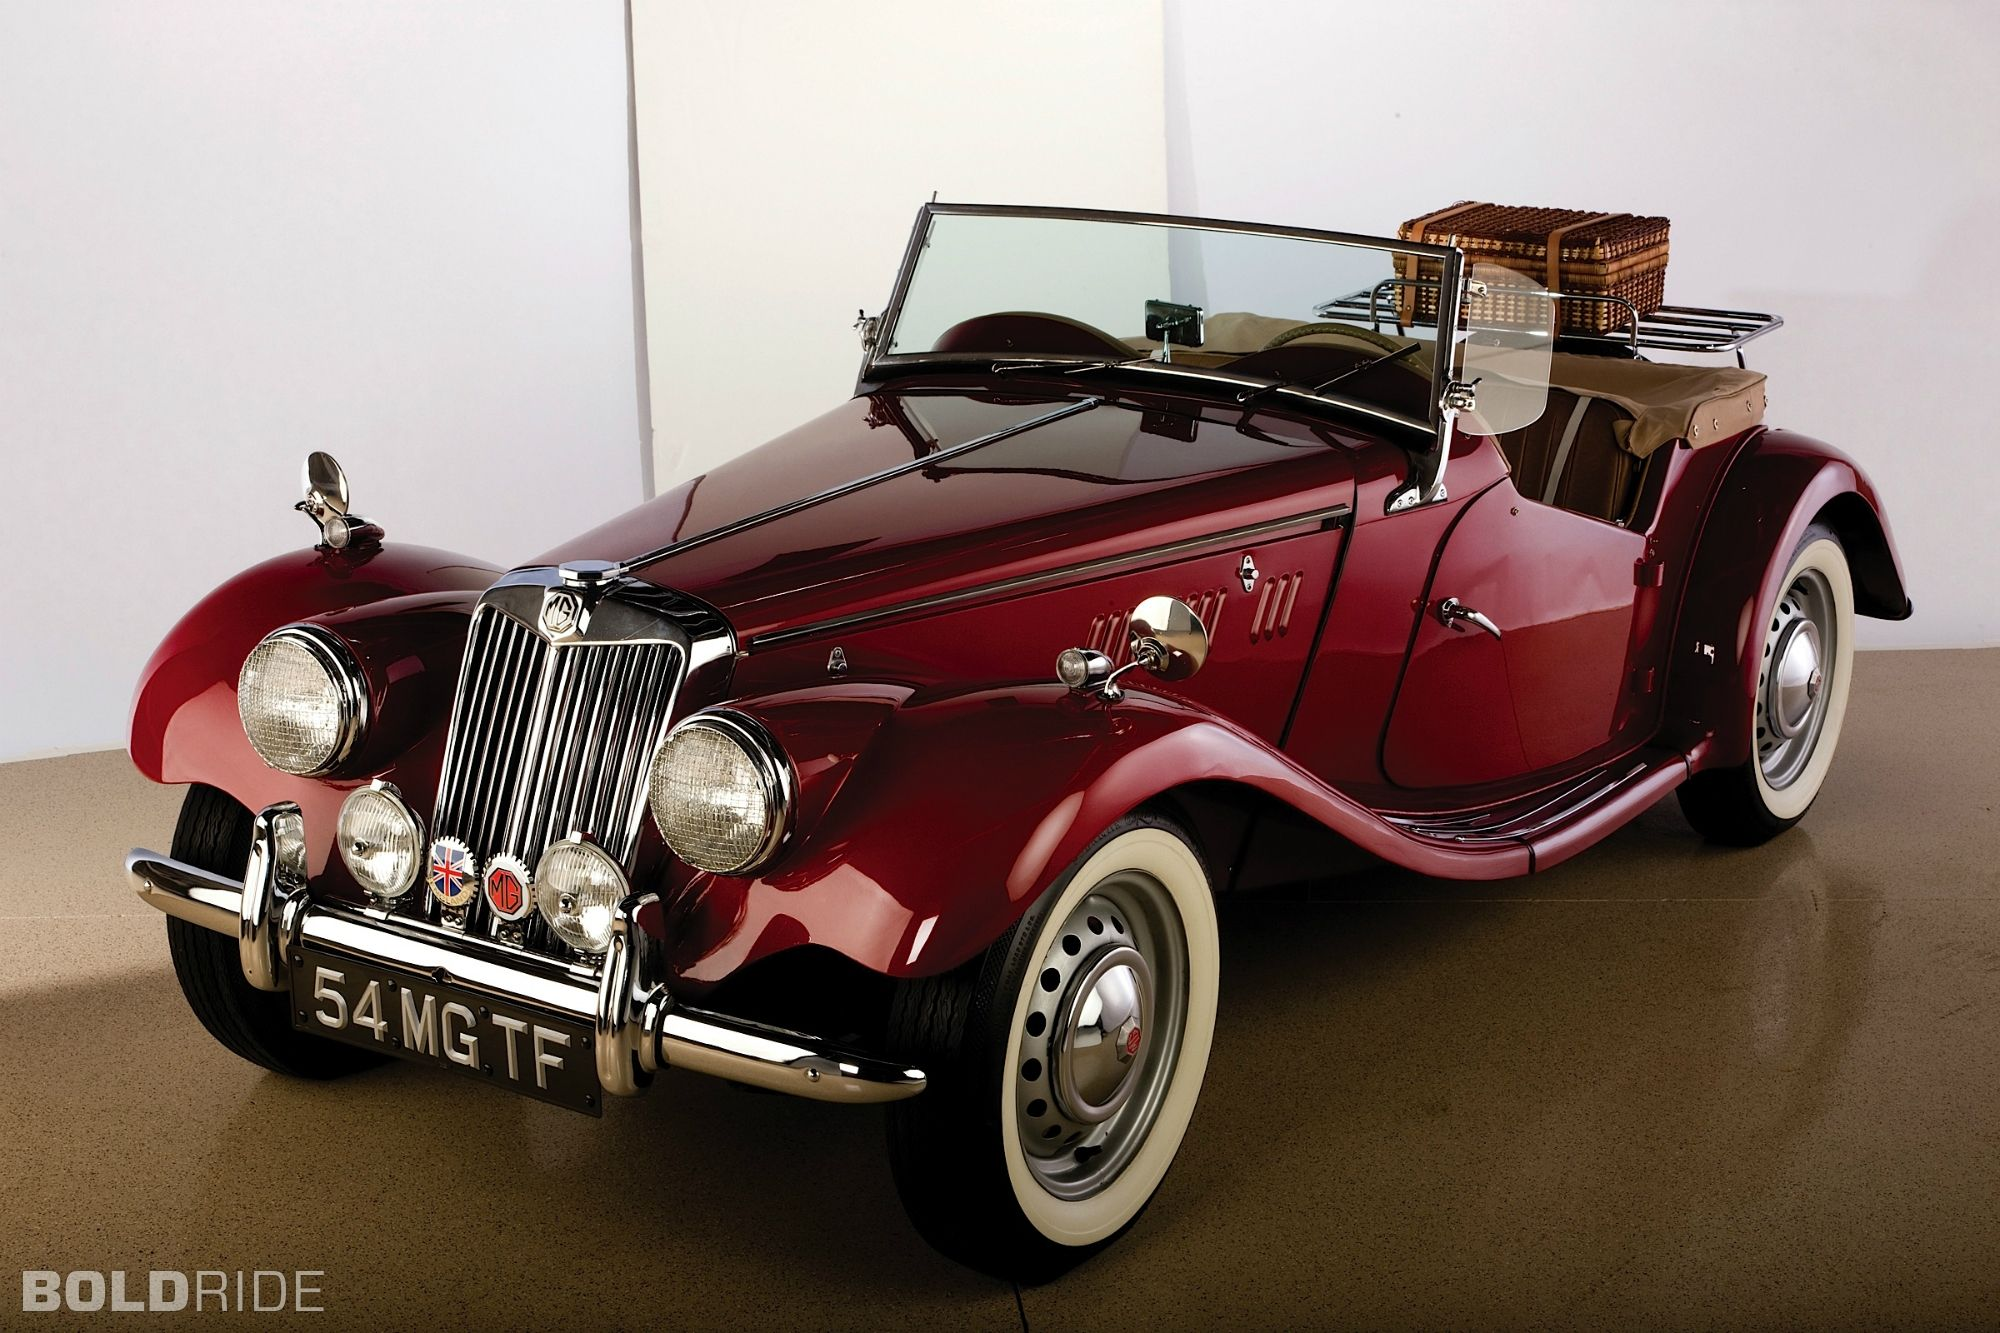 1954 mg tf images pictures and videos vintage mgs pinterest 1954 mg tf images pictures and videos vanachro Gallery